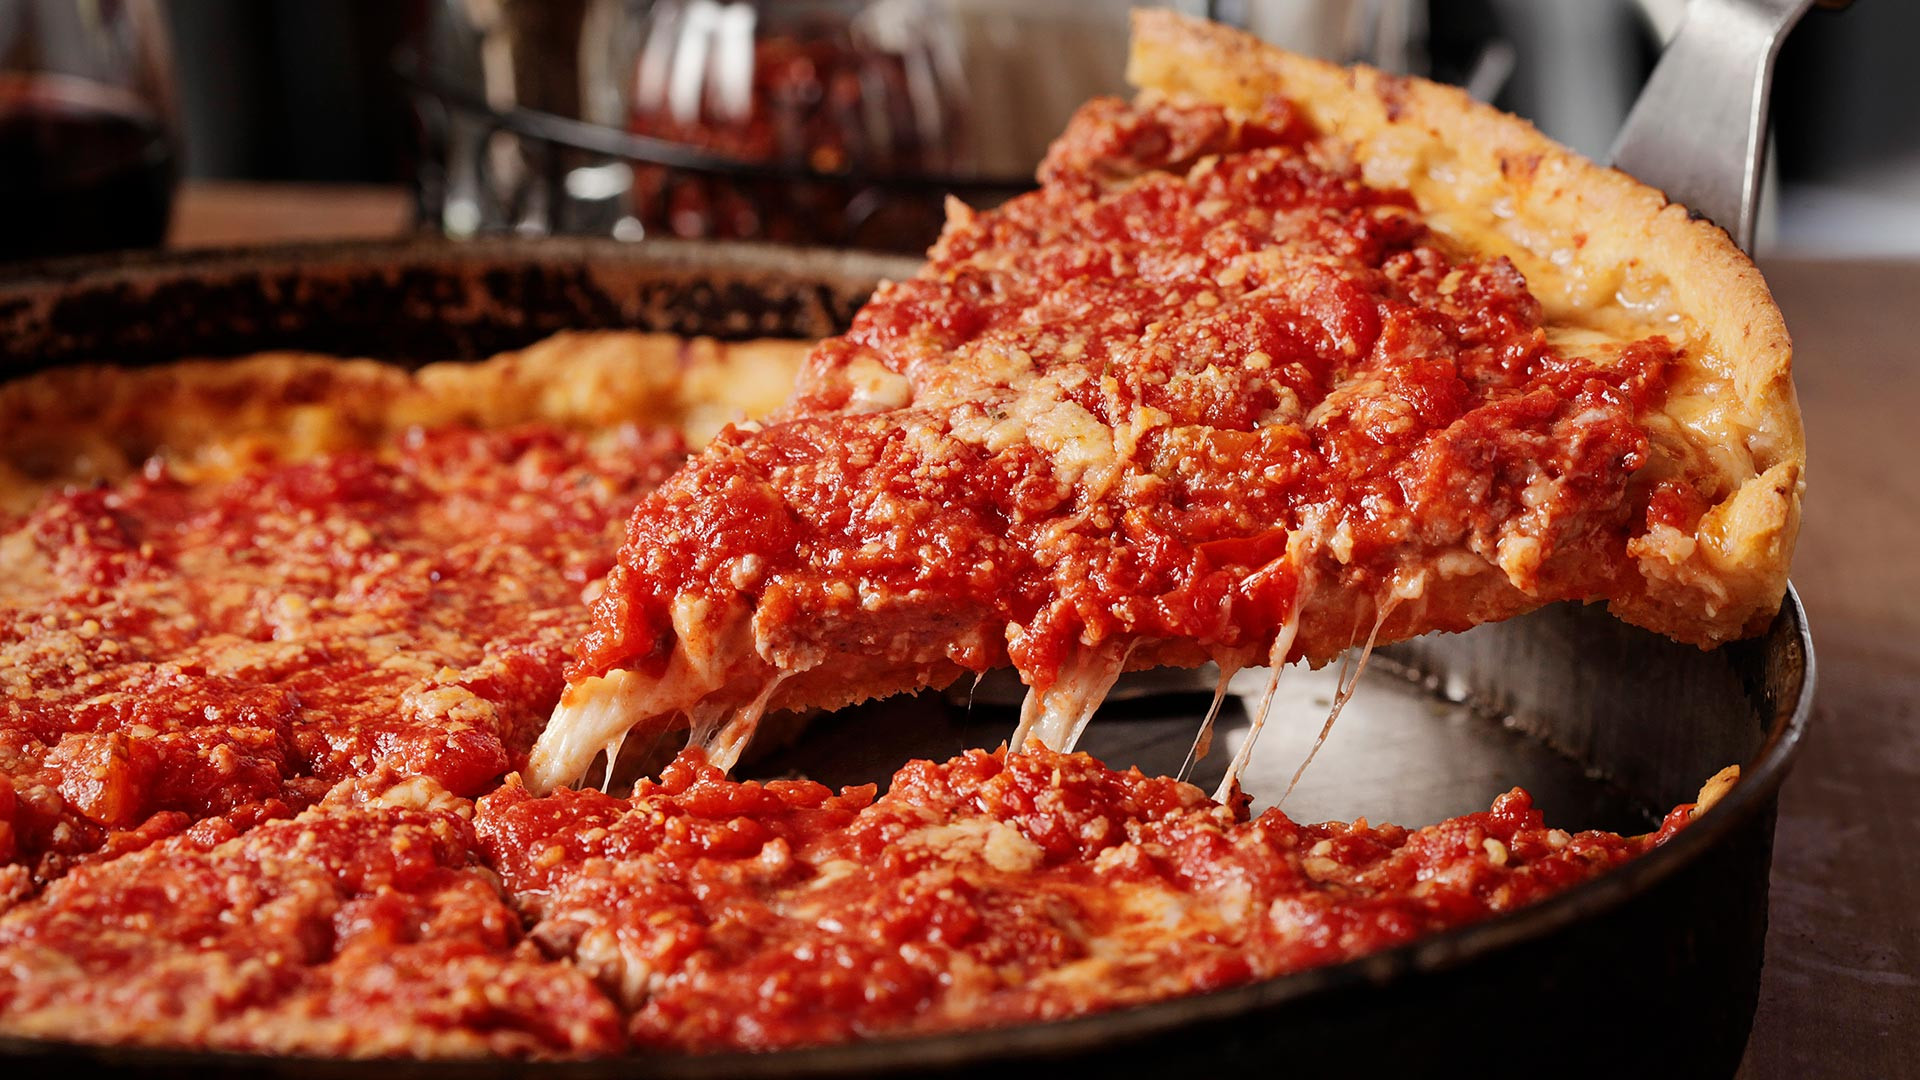 Chicago-style pizza from Lou Malnati's, Chicago